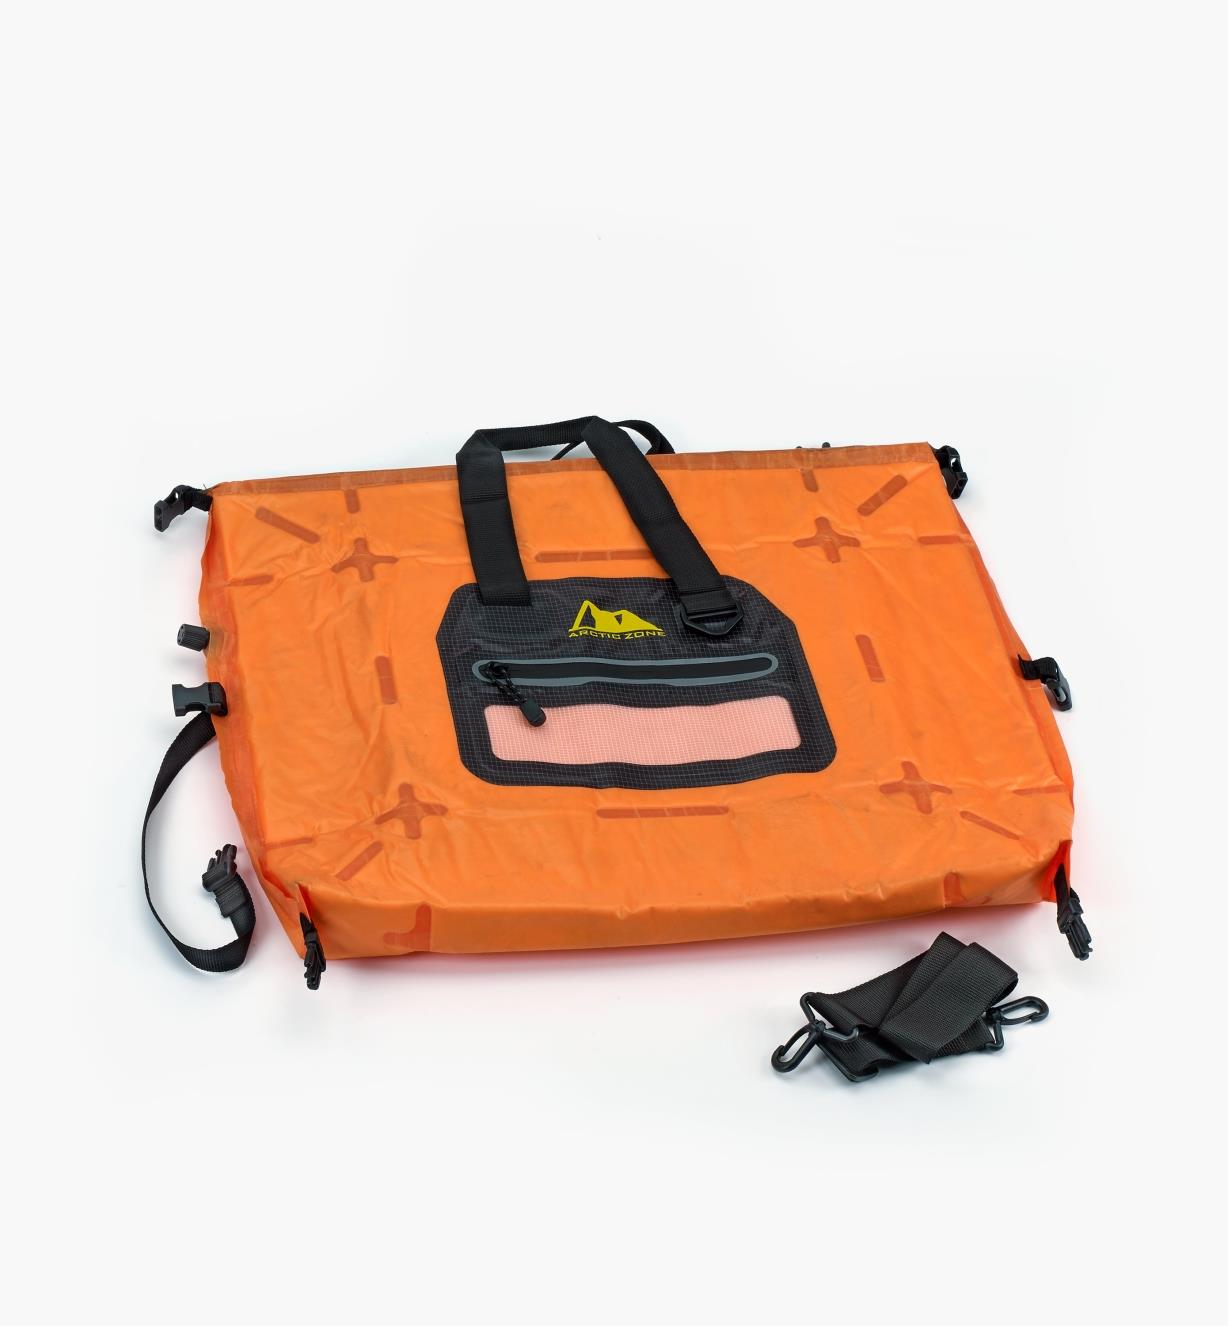 99W3933 - Self-Inflating Cooler, Orange